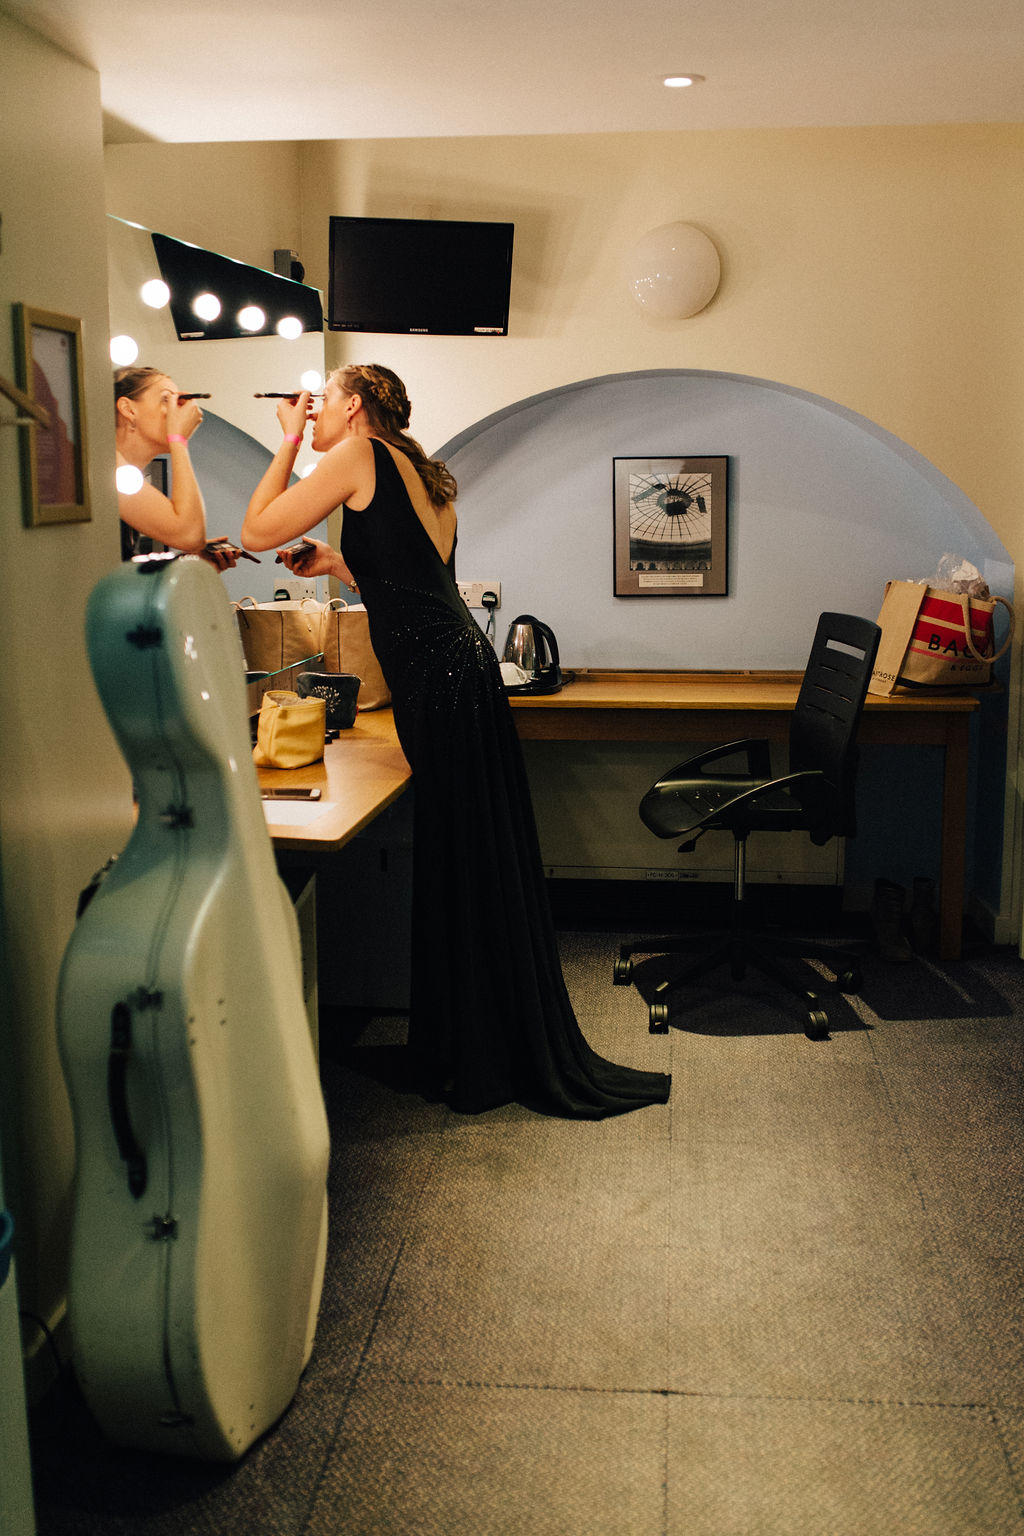 Kath getting ready for her performance